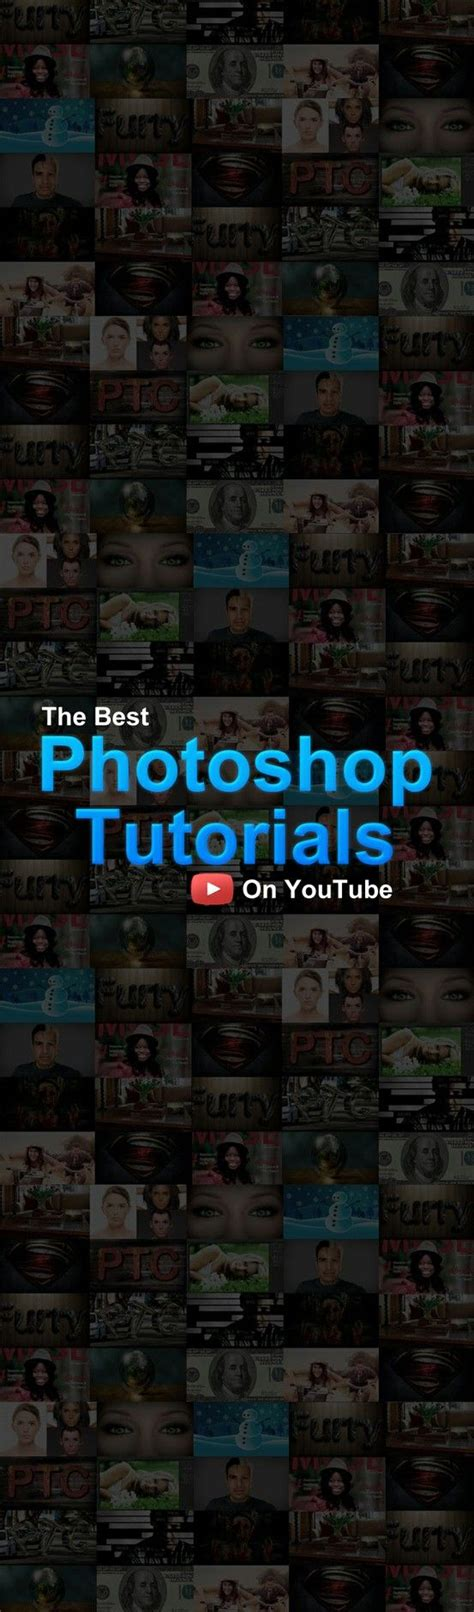 tutorial photoshop photo editing photoshop video tutorials on youtube photo editing